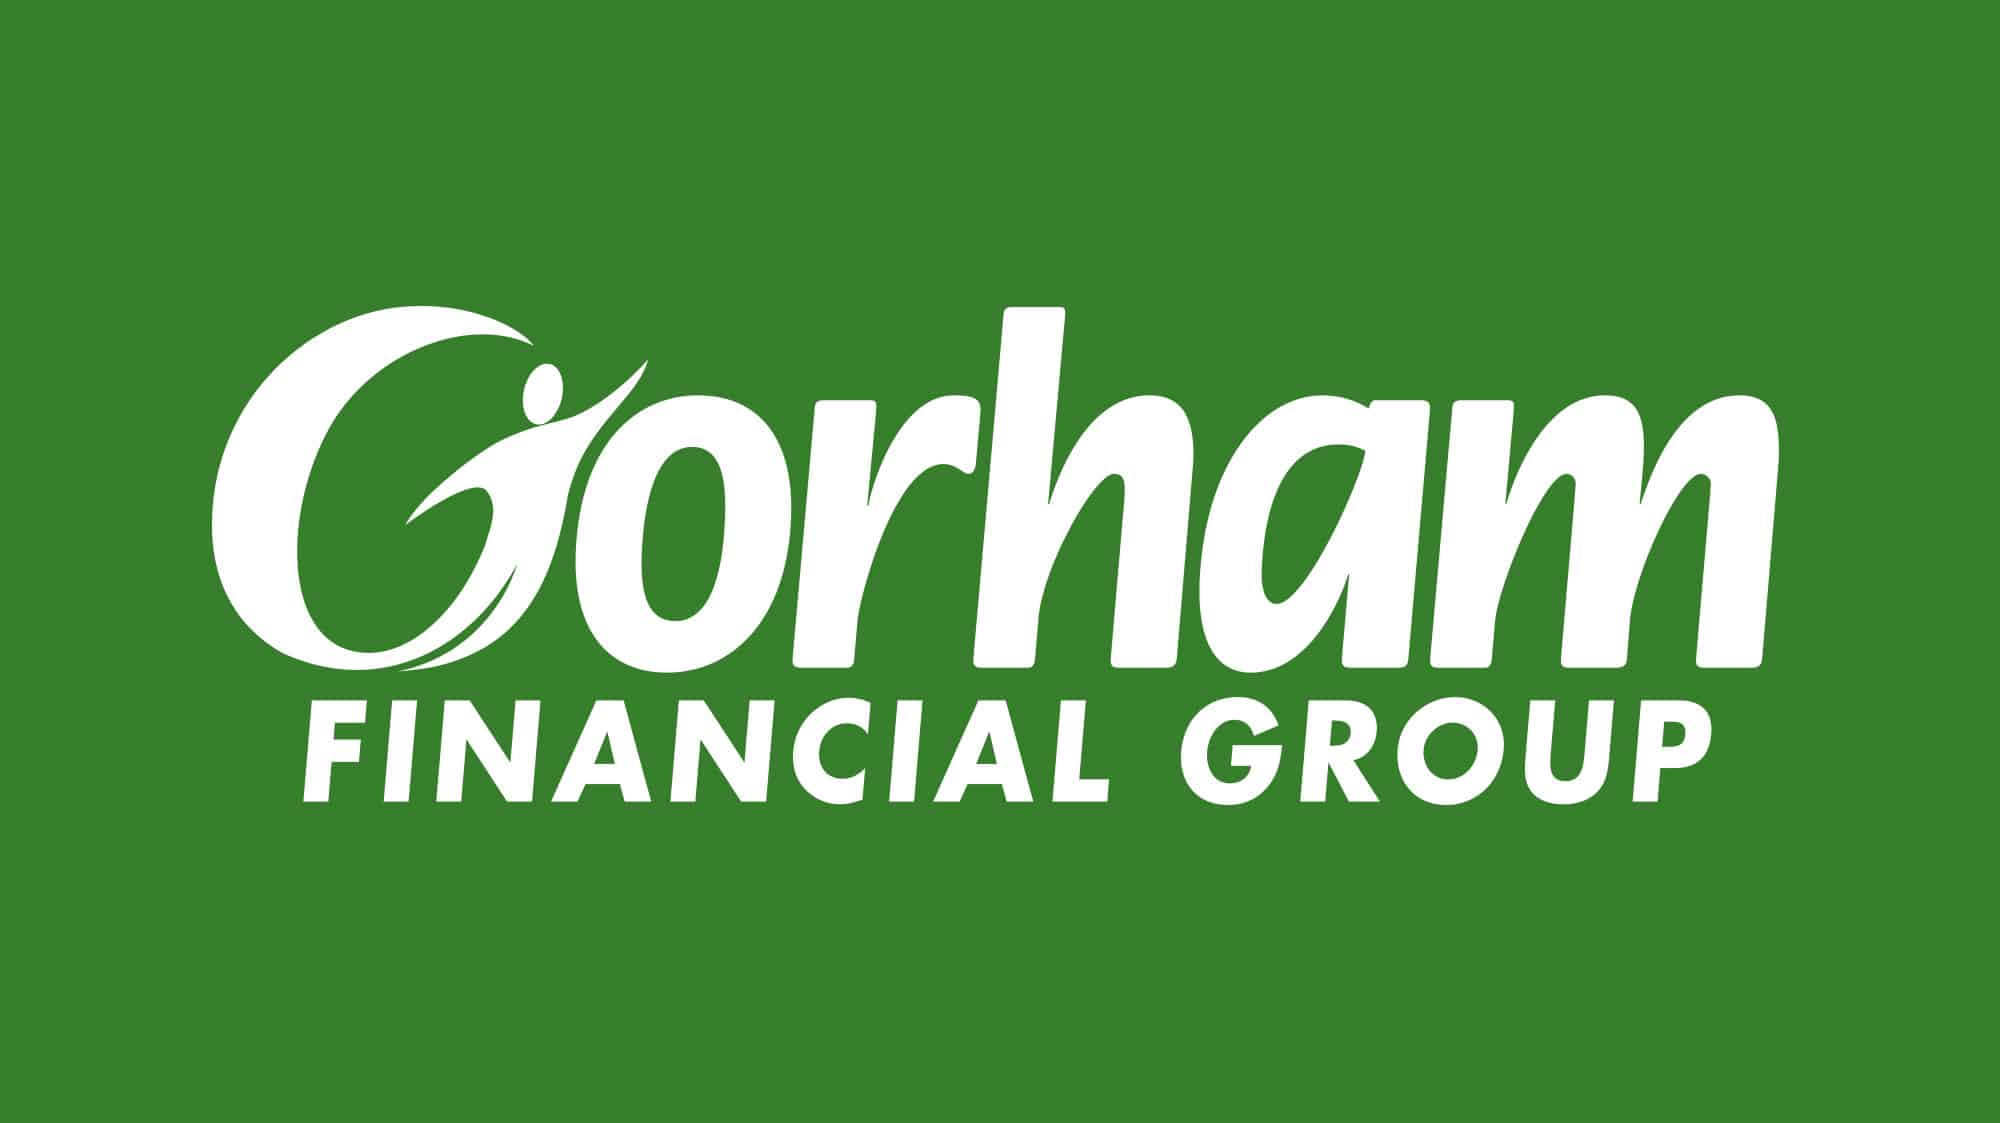 Gorham Savings Bank Financial Group